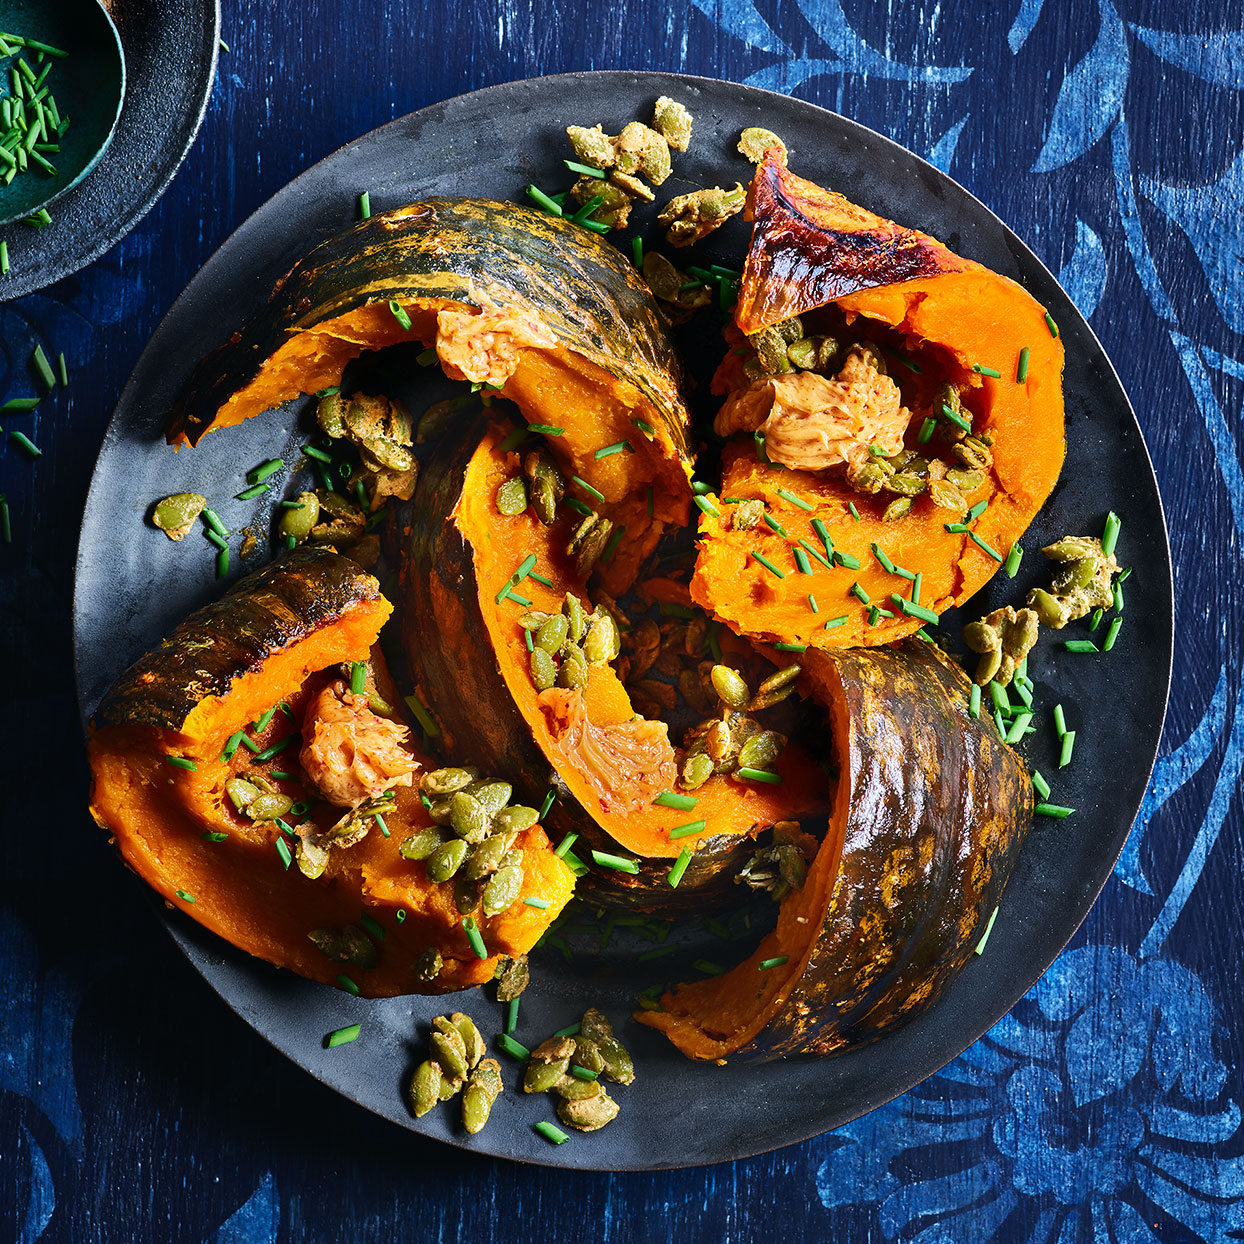 Ever wondered how to cook kabocha squash without ruining your knife? Roasting it whole softens its armor and creates nutty, complex flavor inside. Topped with a savory butter sauce and sweet pumpkin seeds, this Thanksgiving vegetable recipe creates a superstar. Source: EatingWell Magazine, November 2019